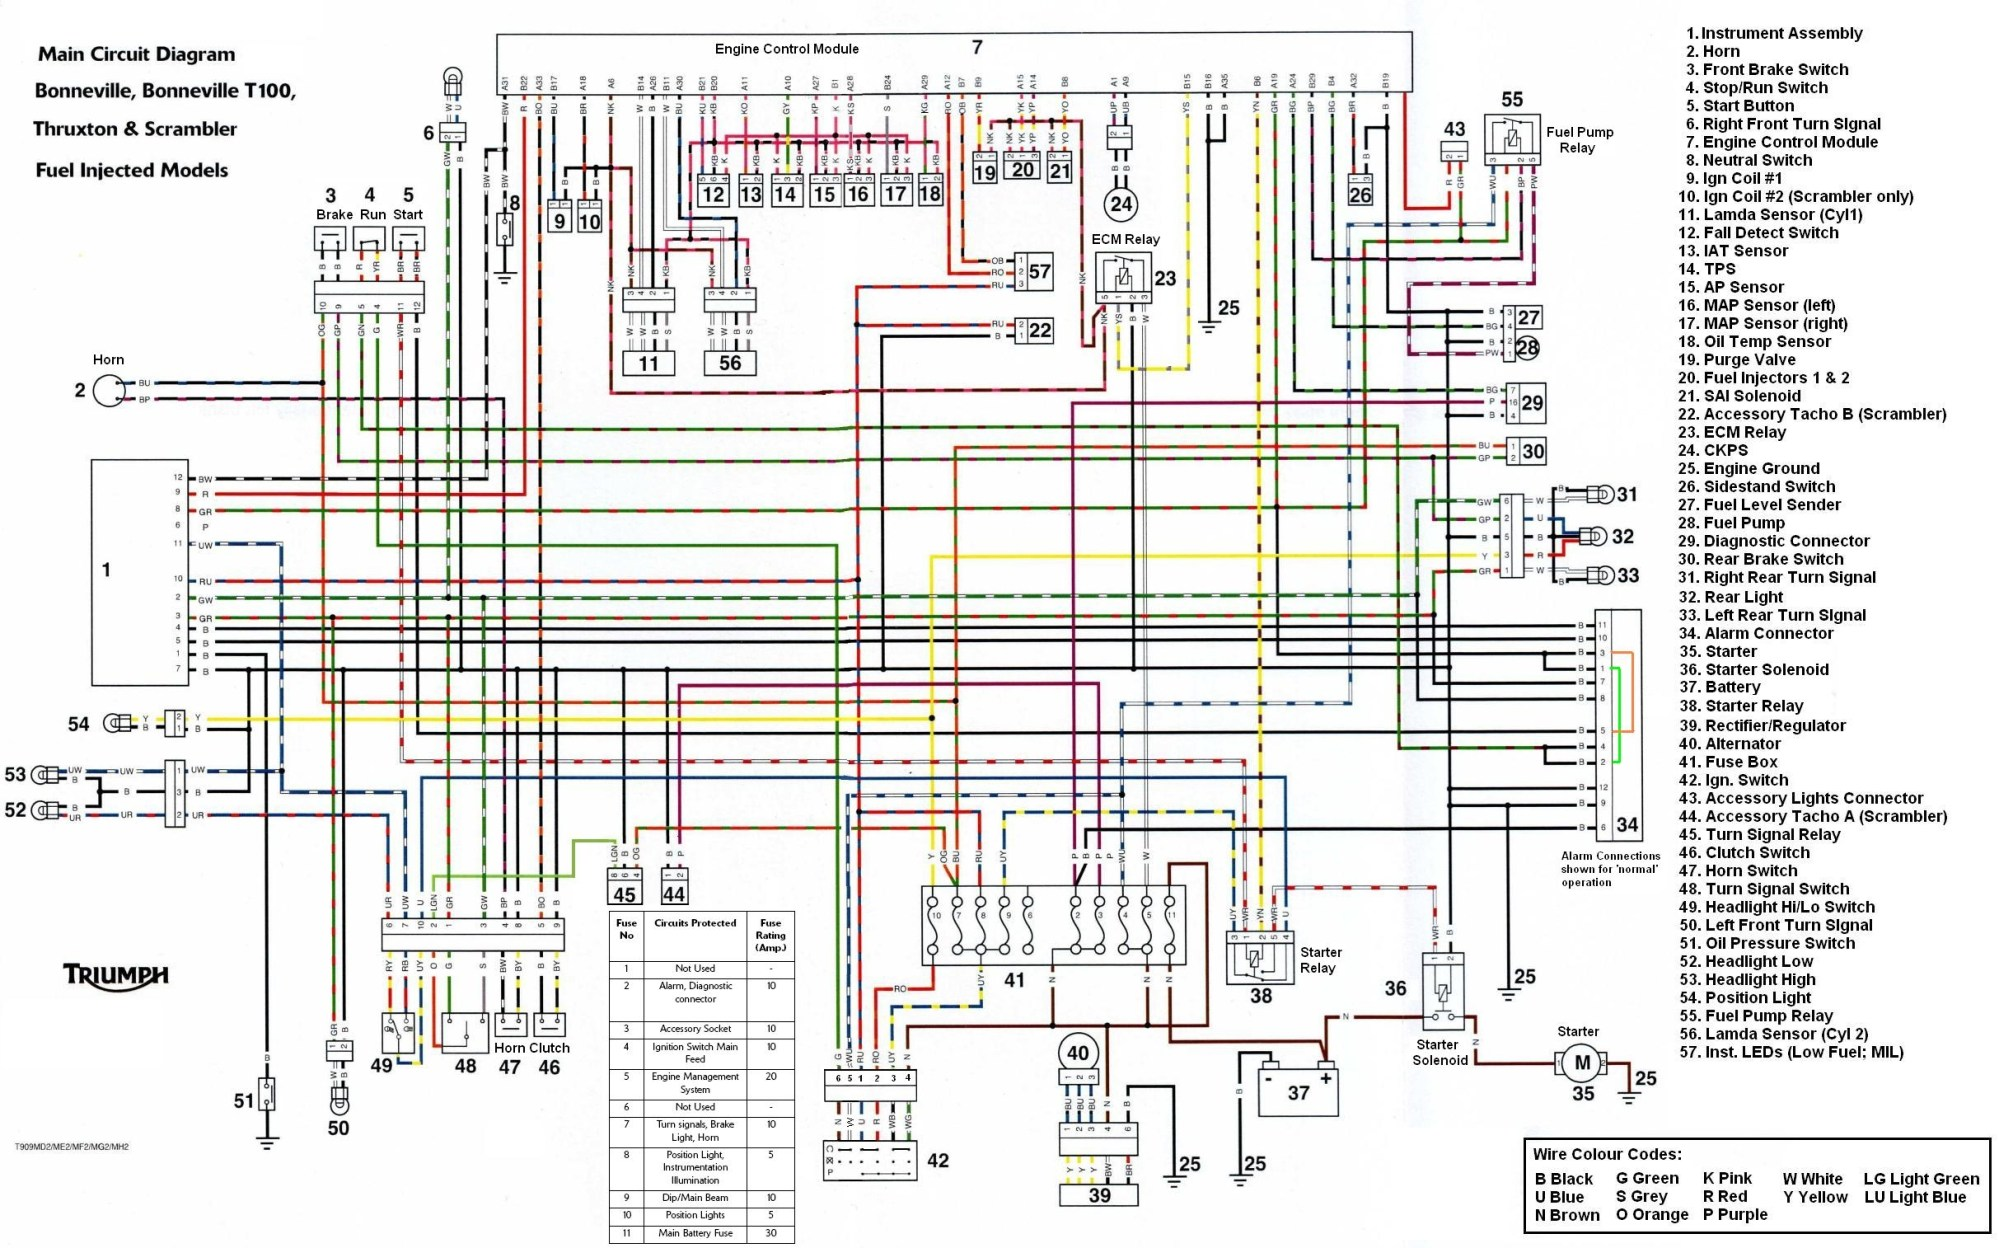 hight resolution of 2005 suzuki boulevard c50 wiring diagram schematic wiring library yamaha motorcycle schematics ts250 wiring diagram opinions